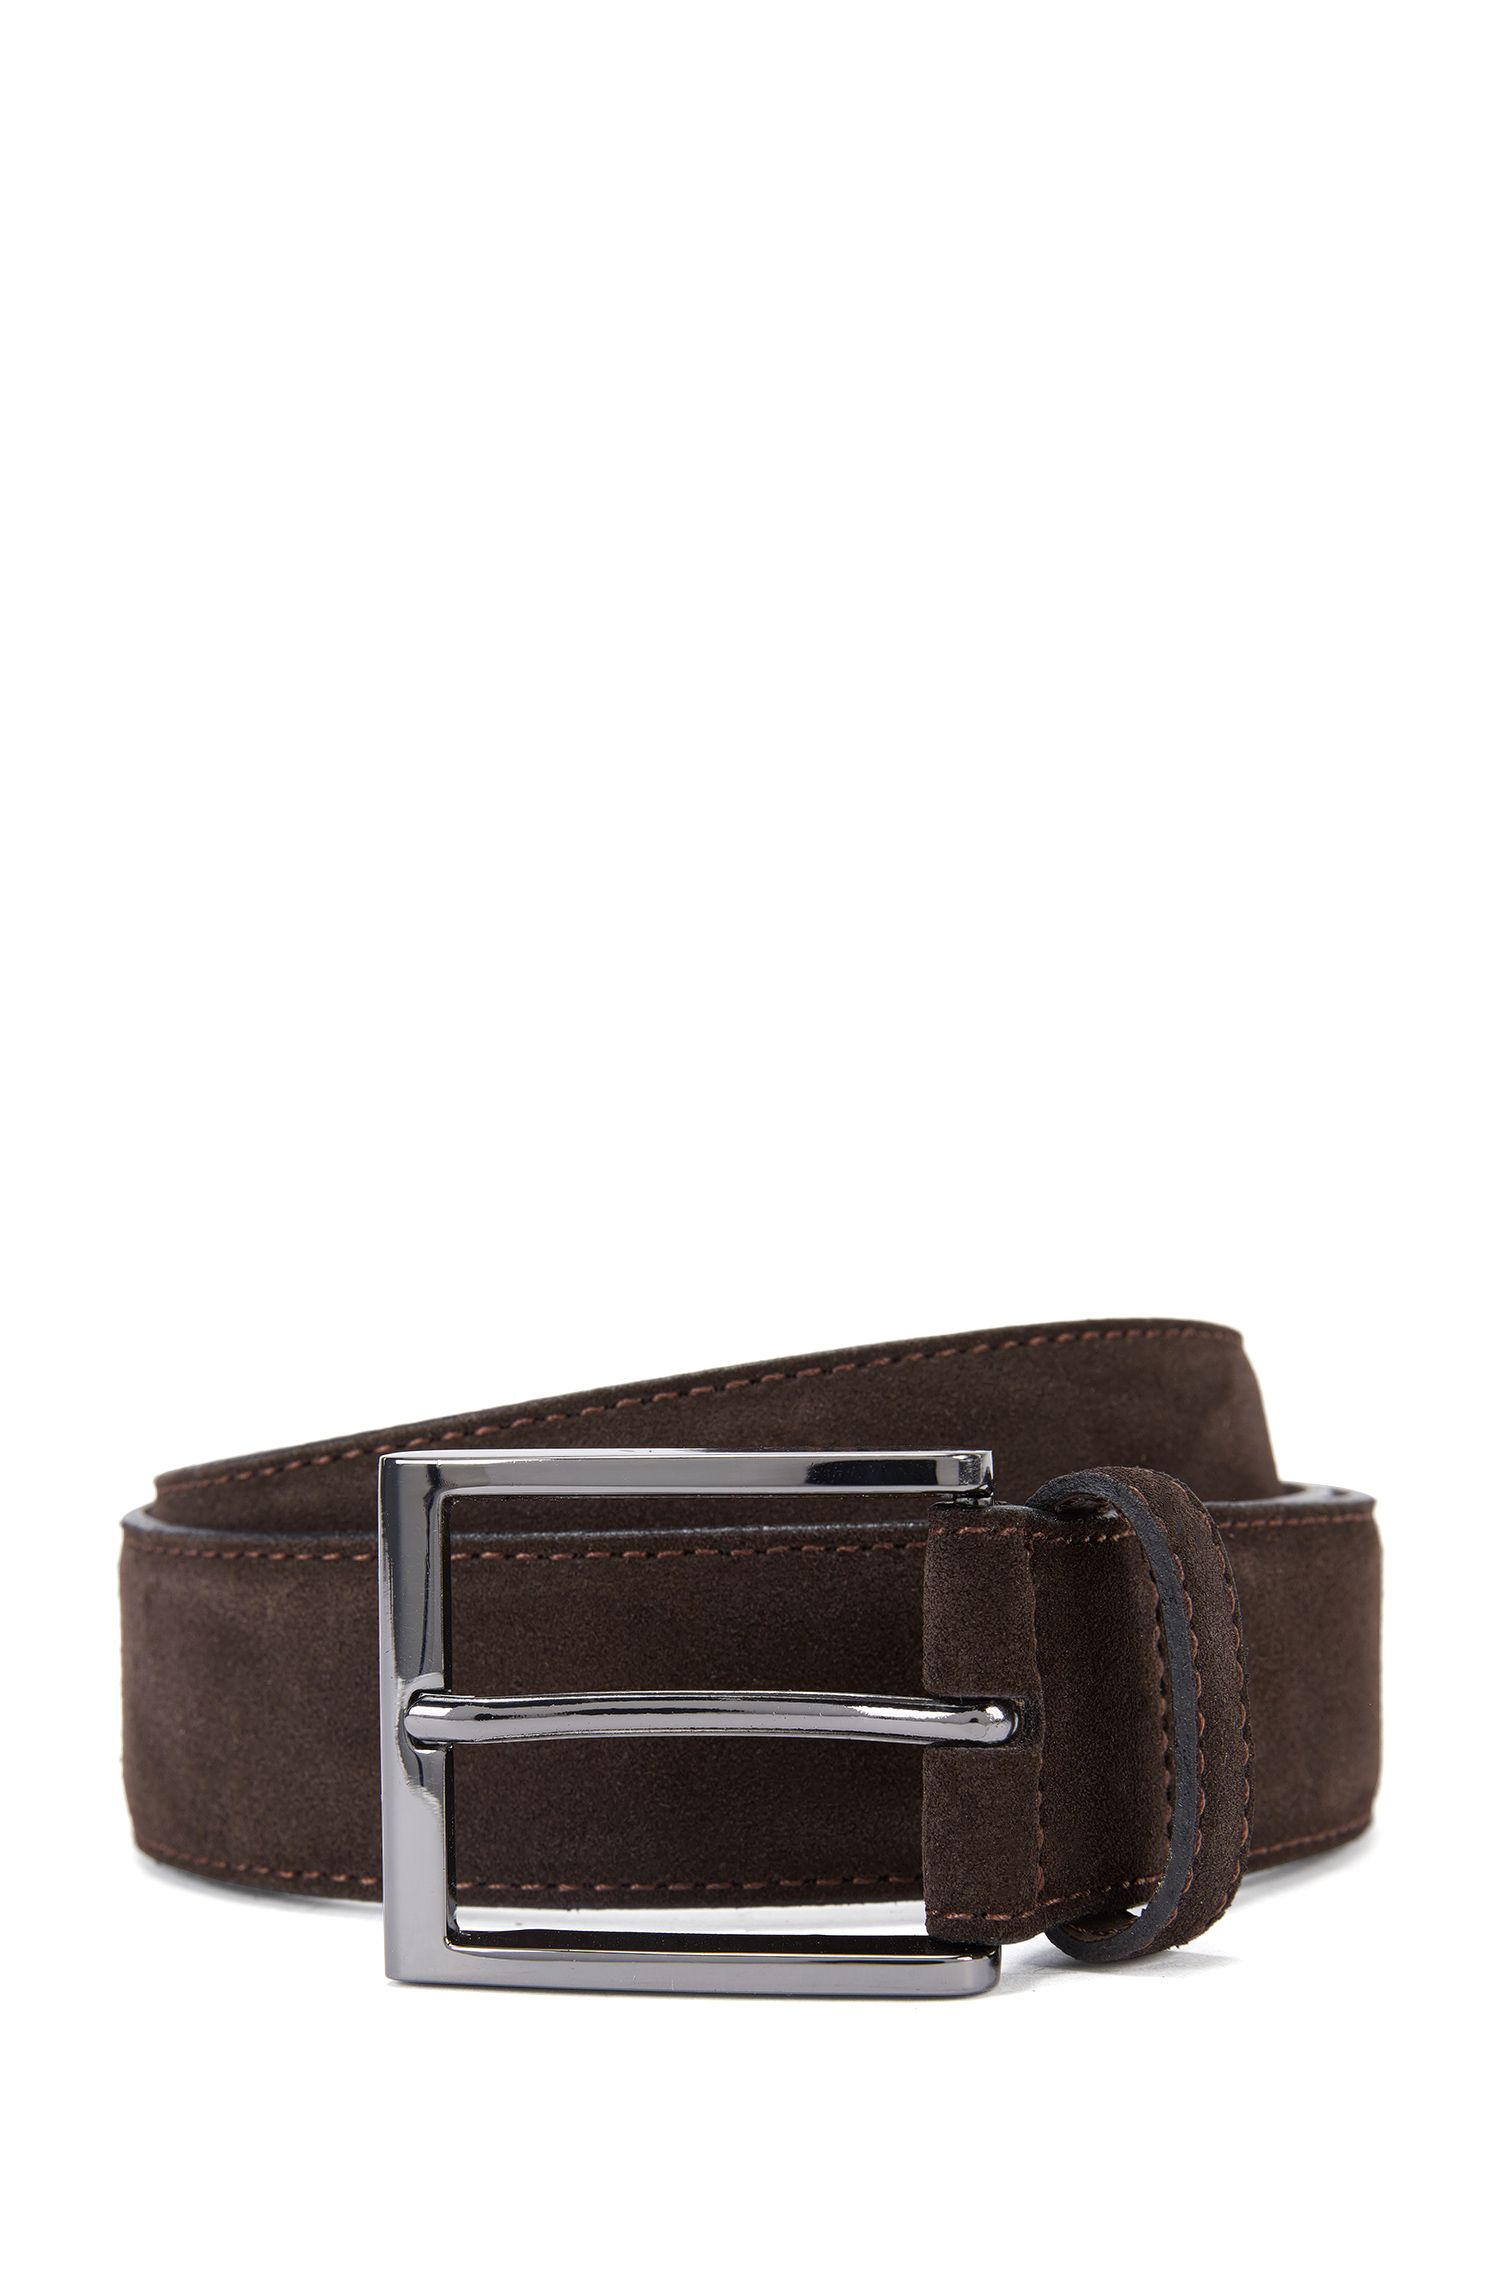 Suede belt with branded metal tip